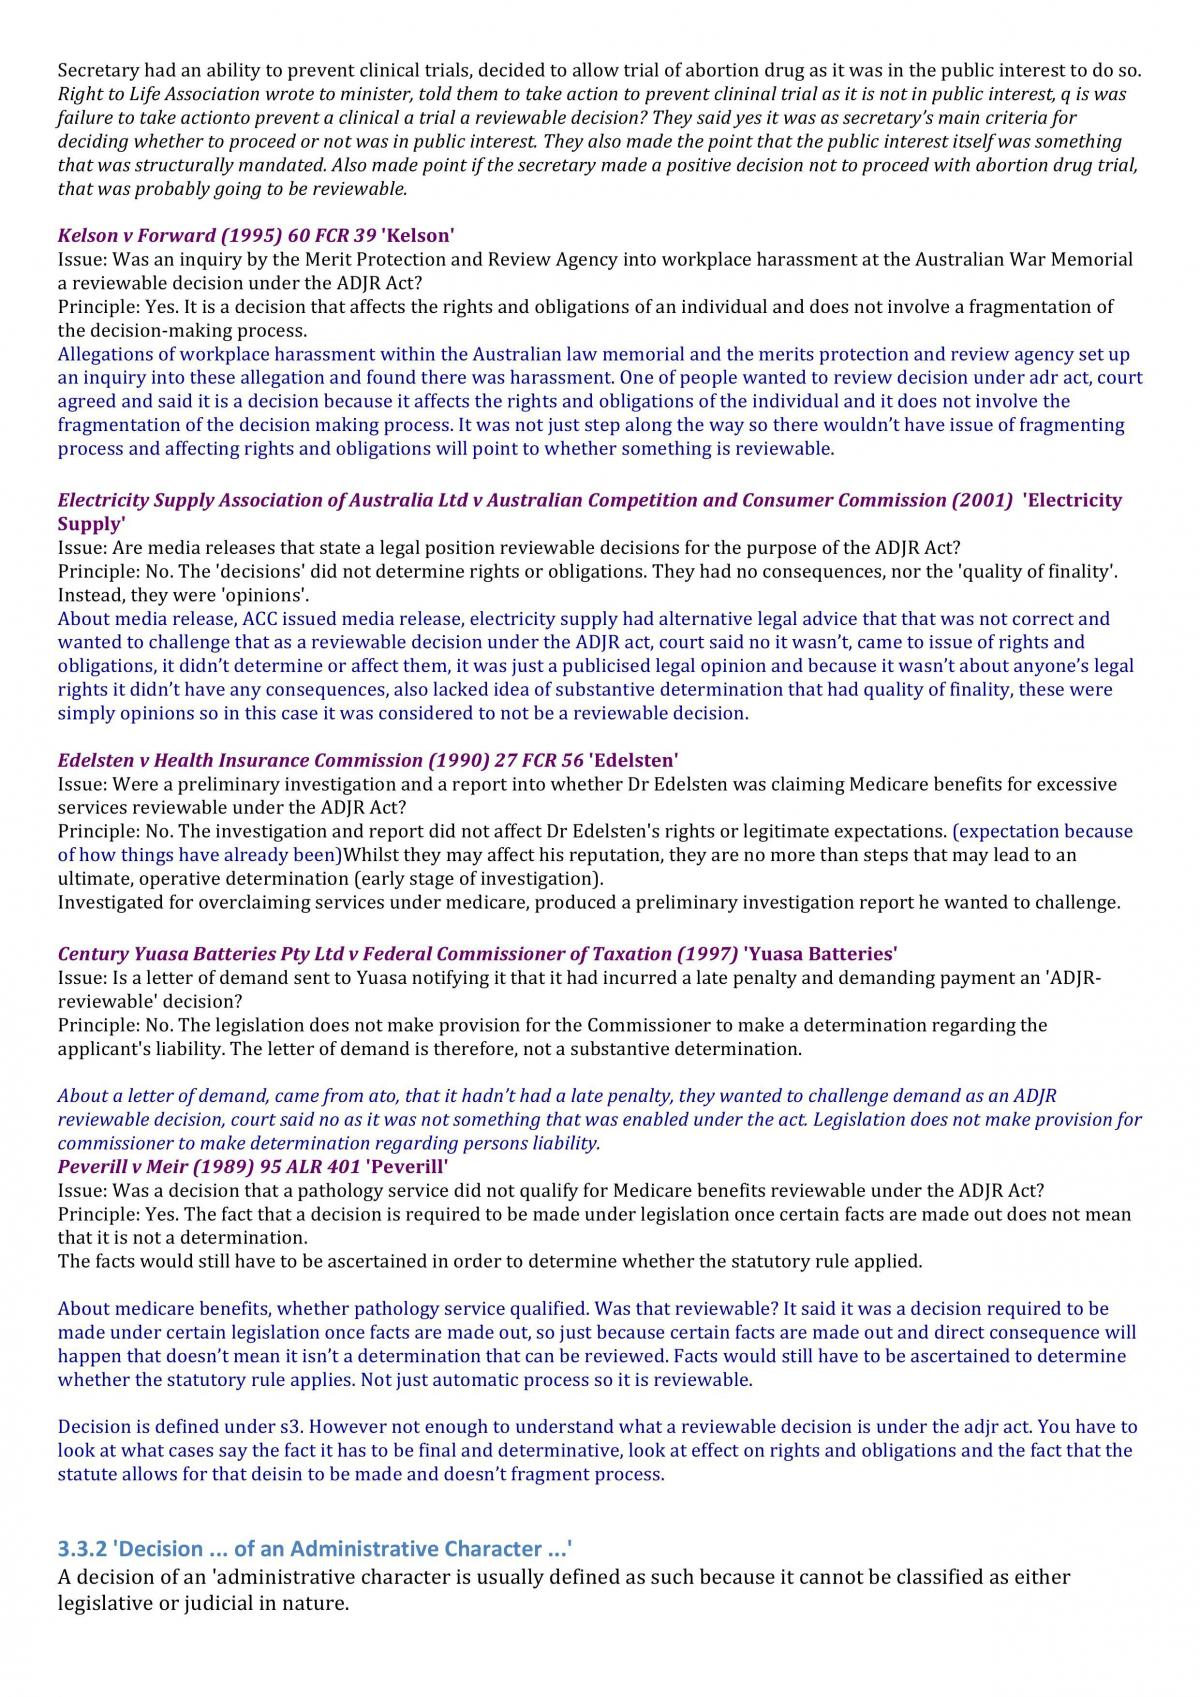 Administrative Law Exam Notes - Page 33